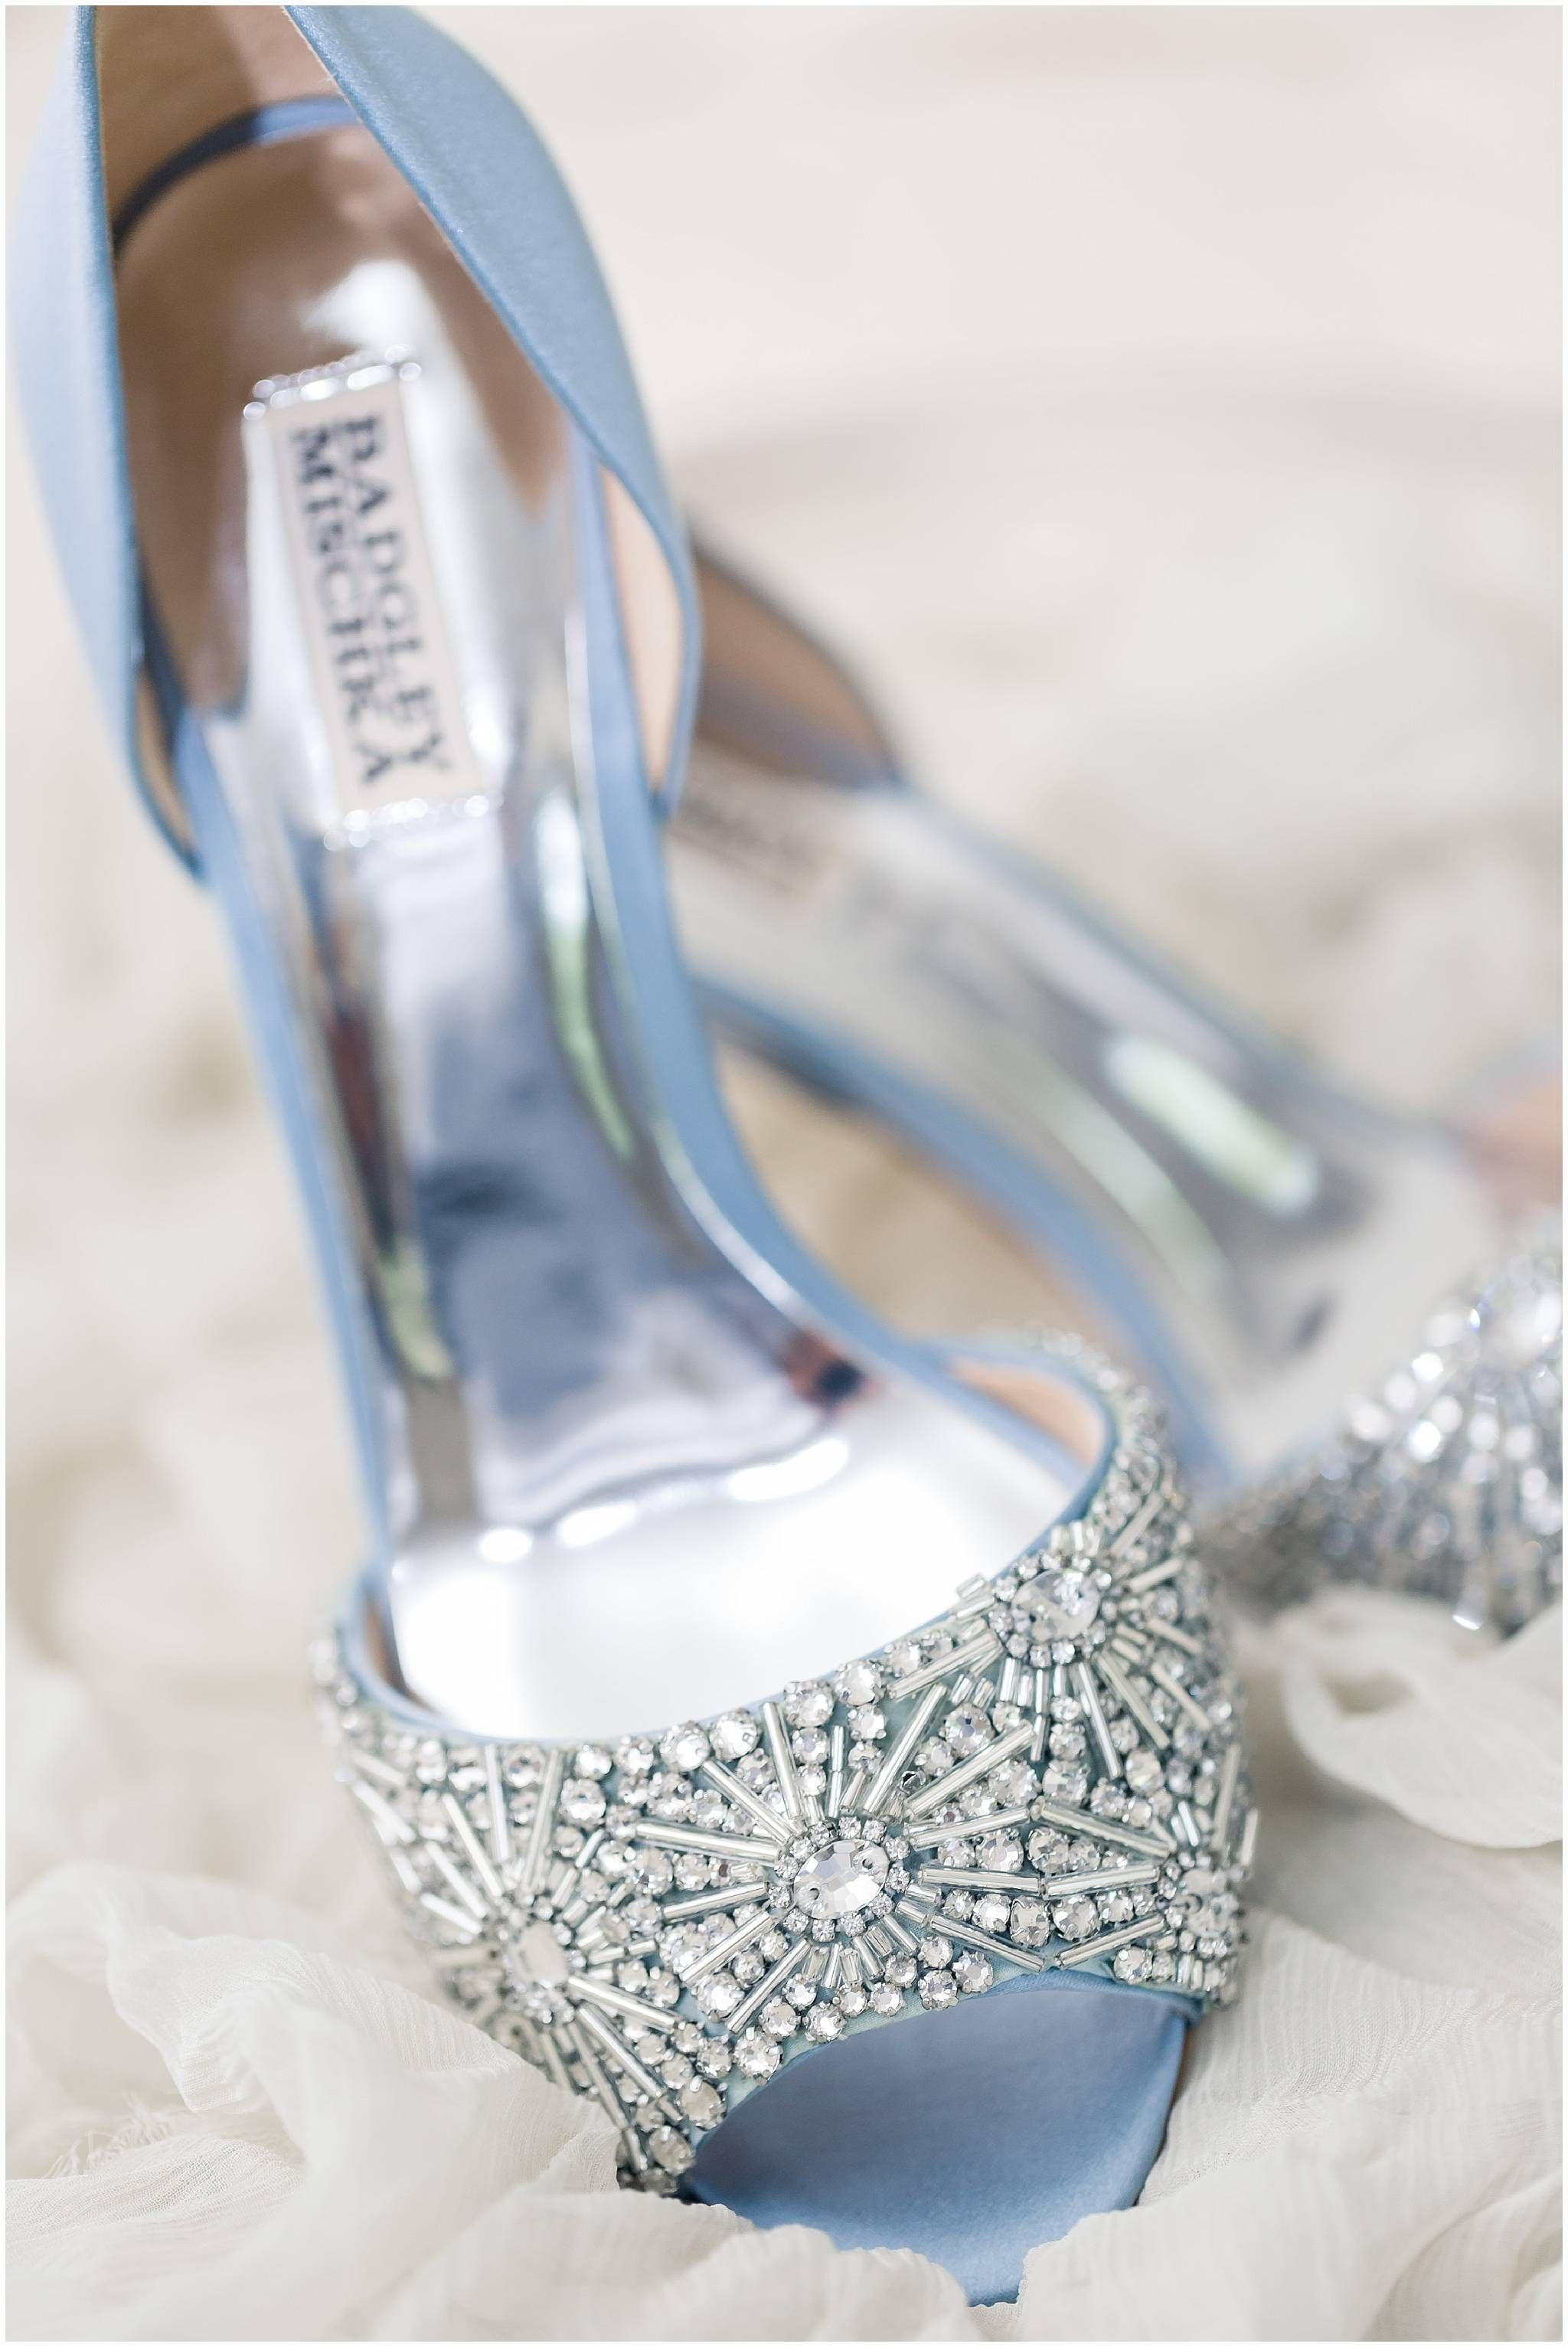 acc36034965b blue badgley mischka wedding shoes. Bride shoes. Blue heels. Sparkle. Canon  100mm macro. Photographing the rings. Engagement Rings. Luxury wedding at  ...